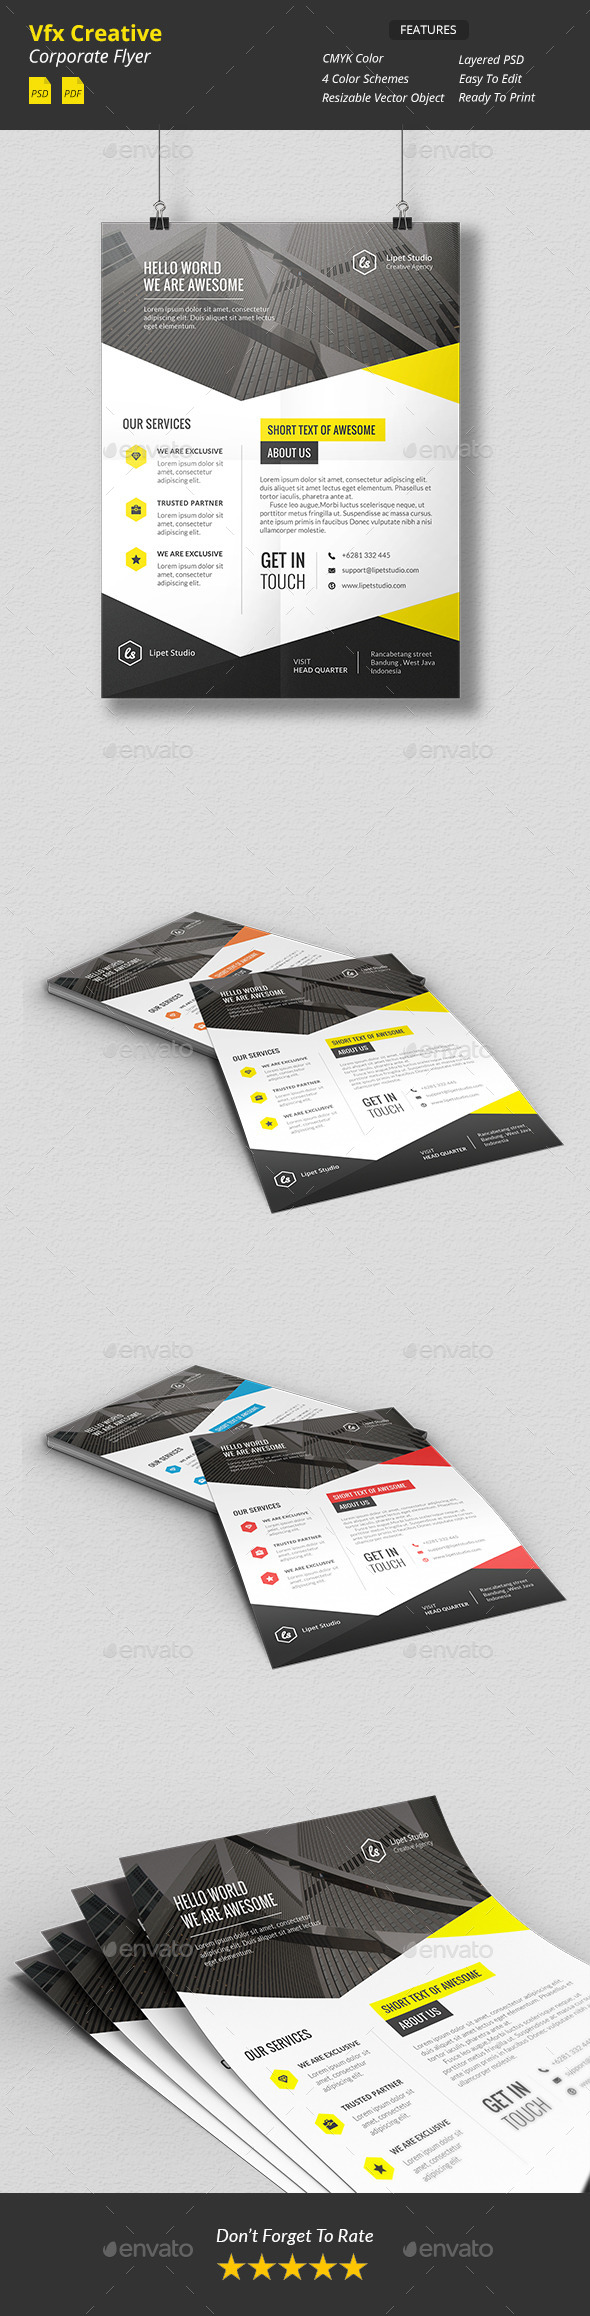 Vfx Creative Corporate Flyer v1